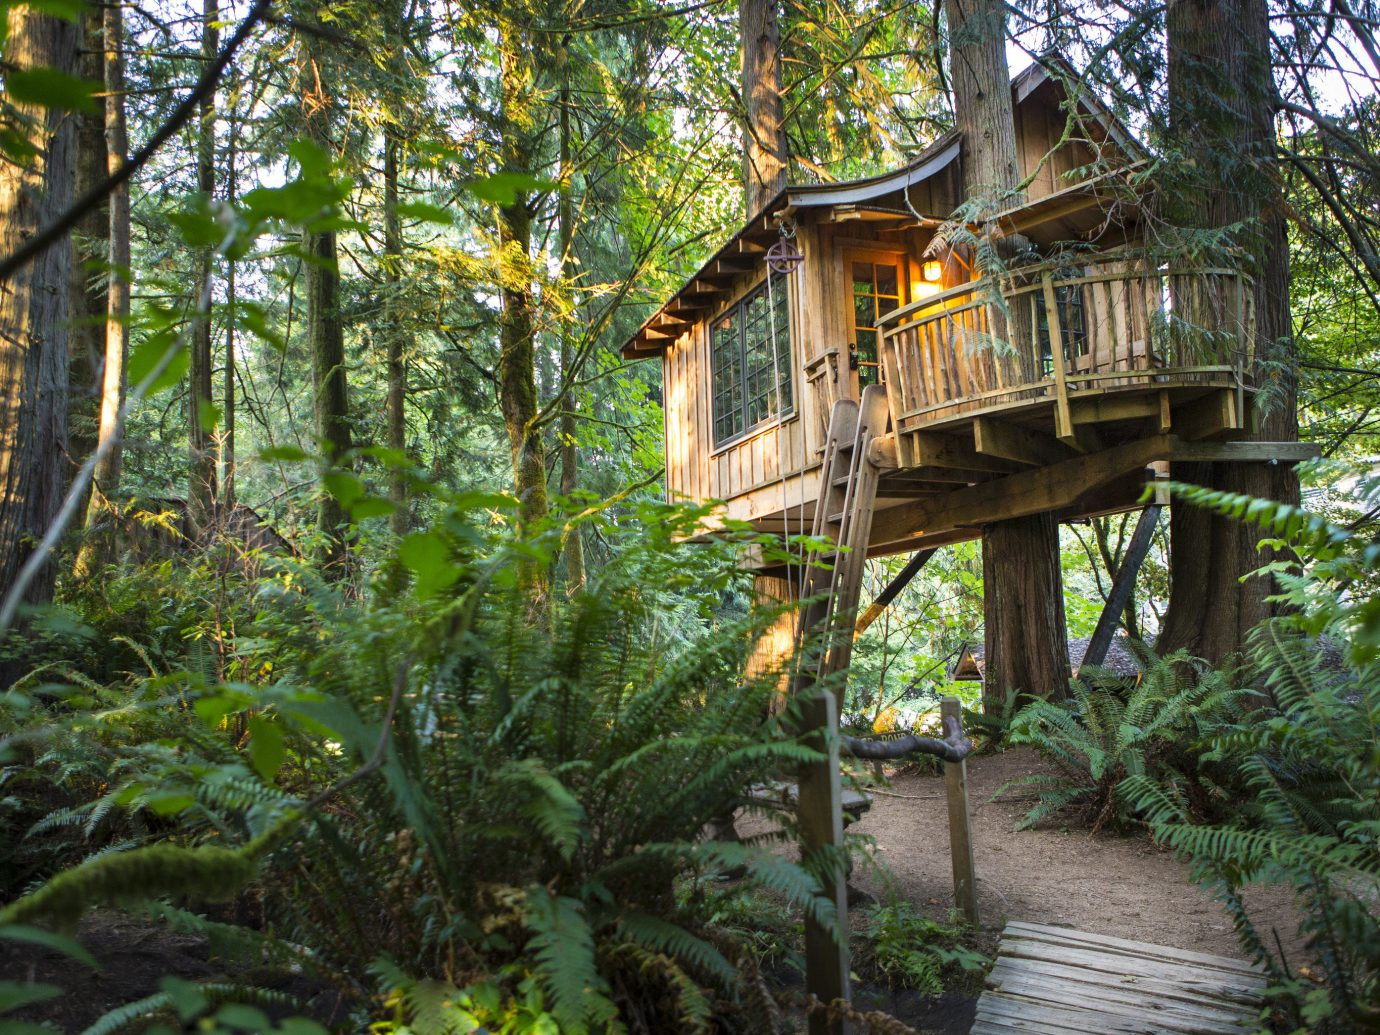 tree outdoor habitat wilderness natural environment building Forest botany tree house woodland rainforest Jungle outdoor structure trail flower Garden plant wood area wooded surrounded